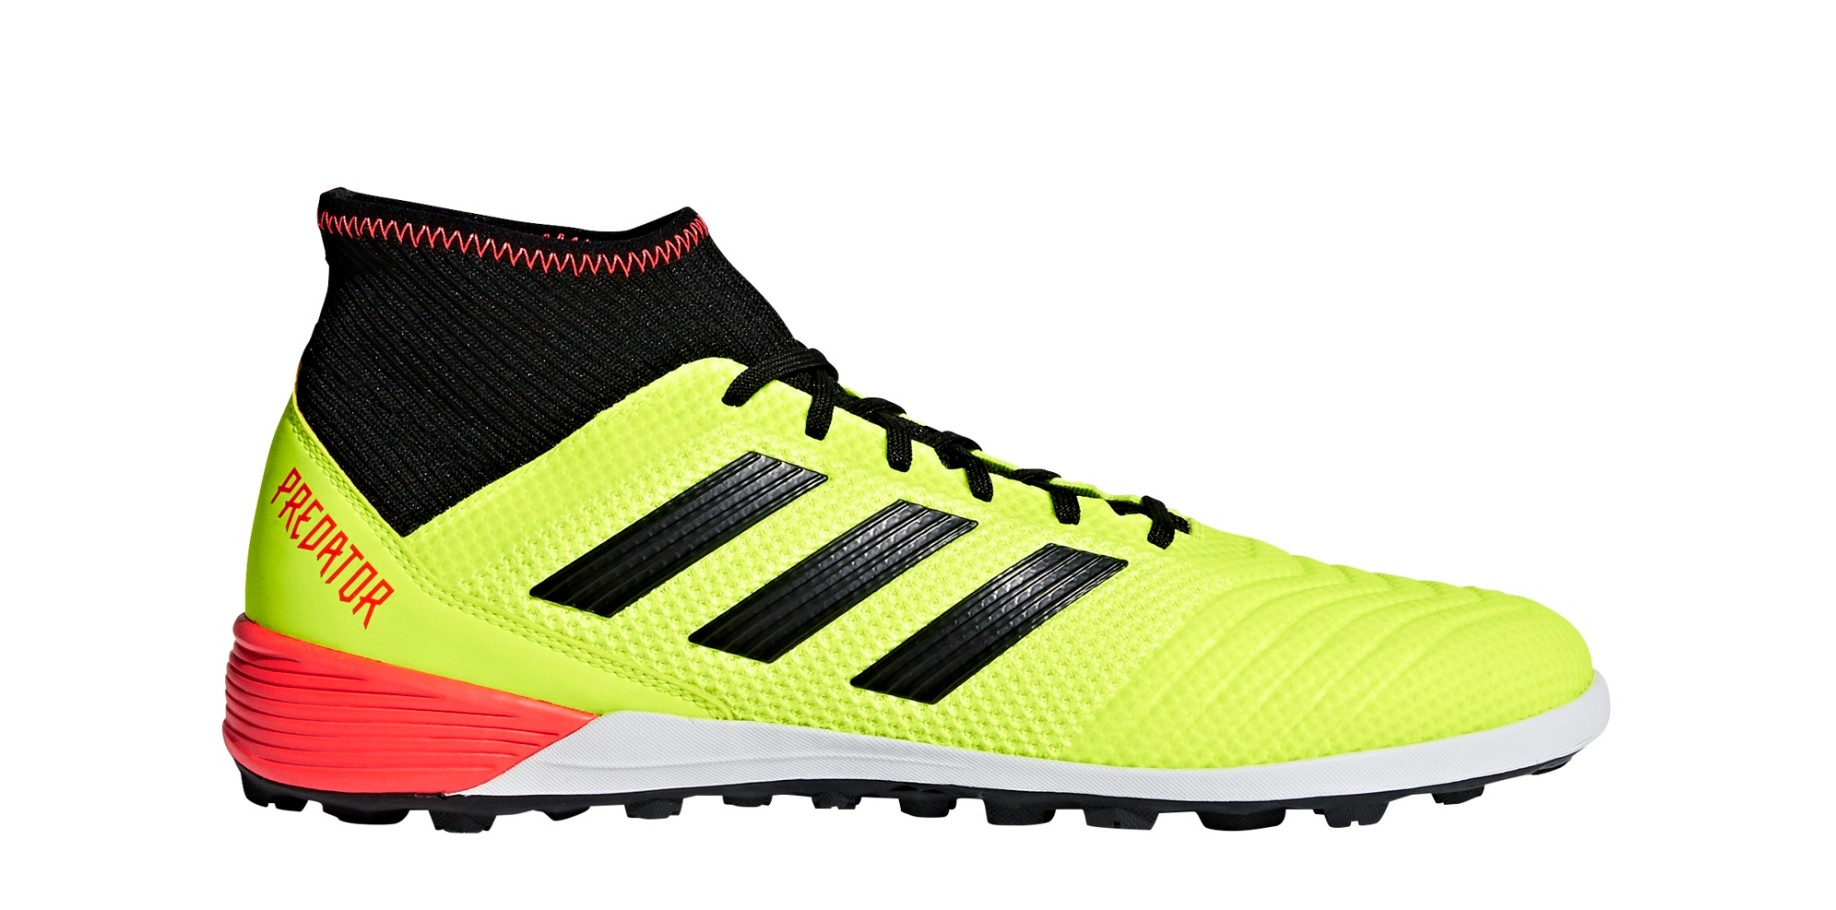 Shoes Soccer Adidas Predator Tango 18.3 TF Energy Mode Pack colore Yellow  Red - Adidas - SportIT.com 35f89411730